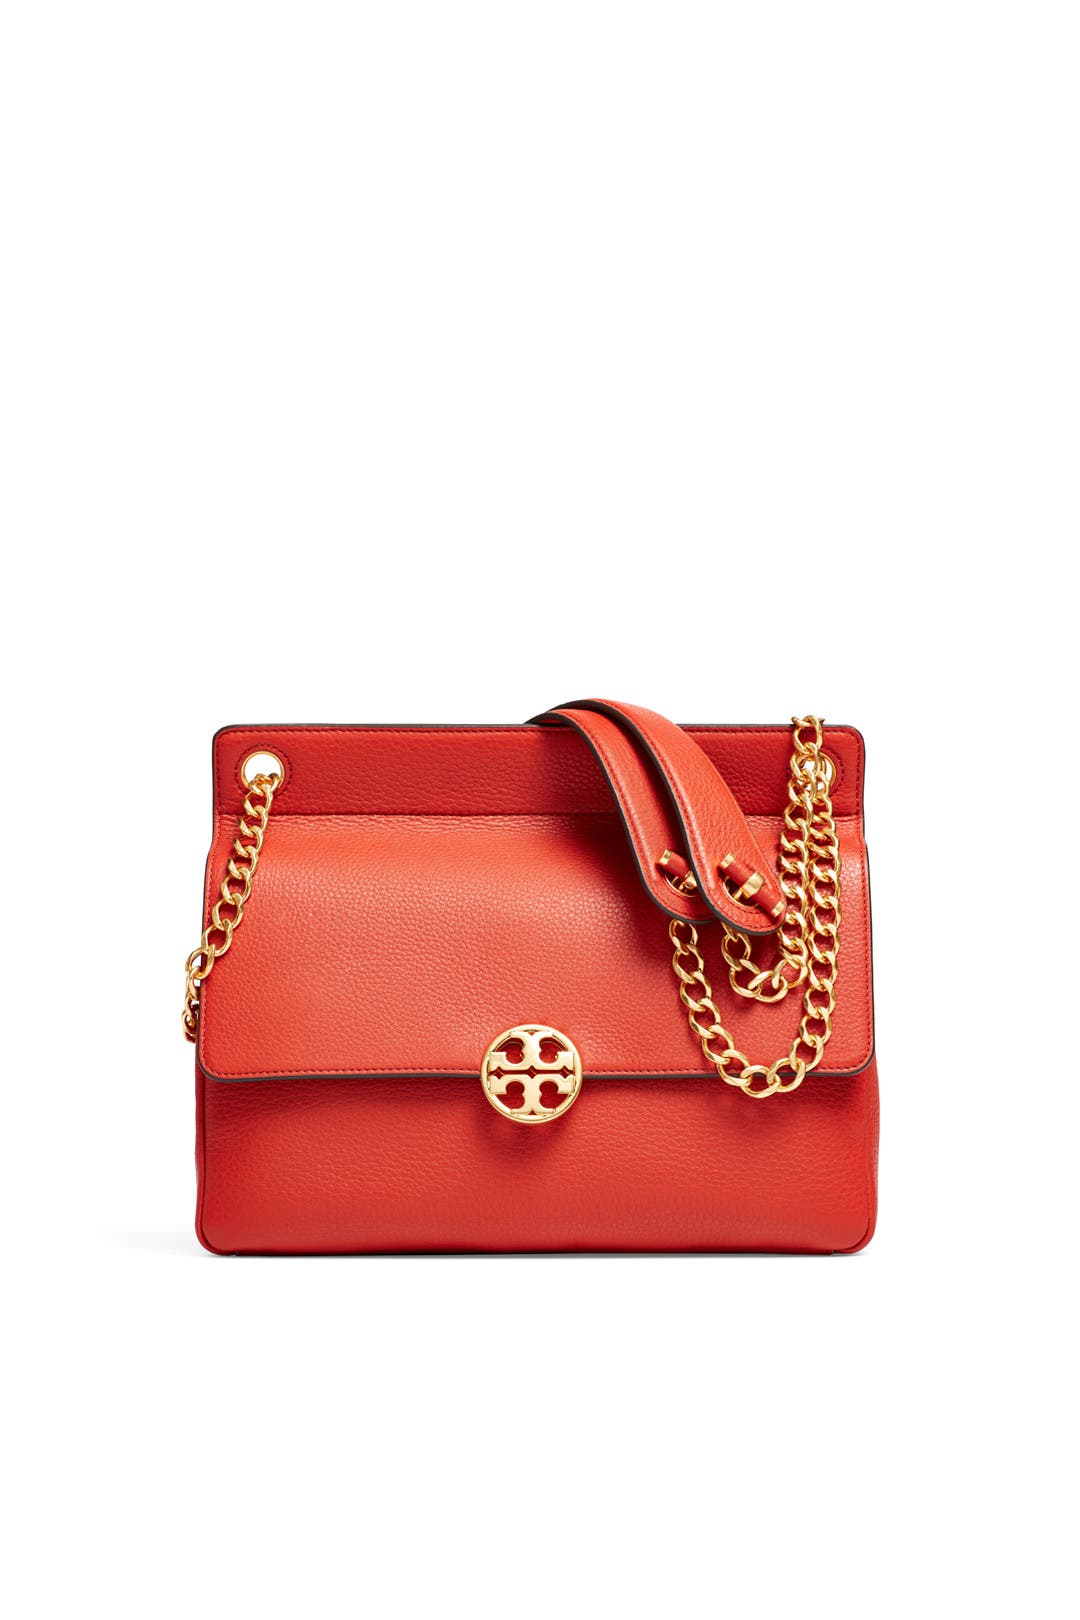 45b48f6b3124 Tory Burch Accessories. Read Reviews. Chelsea Flap Shoulder Bag